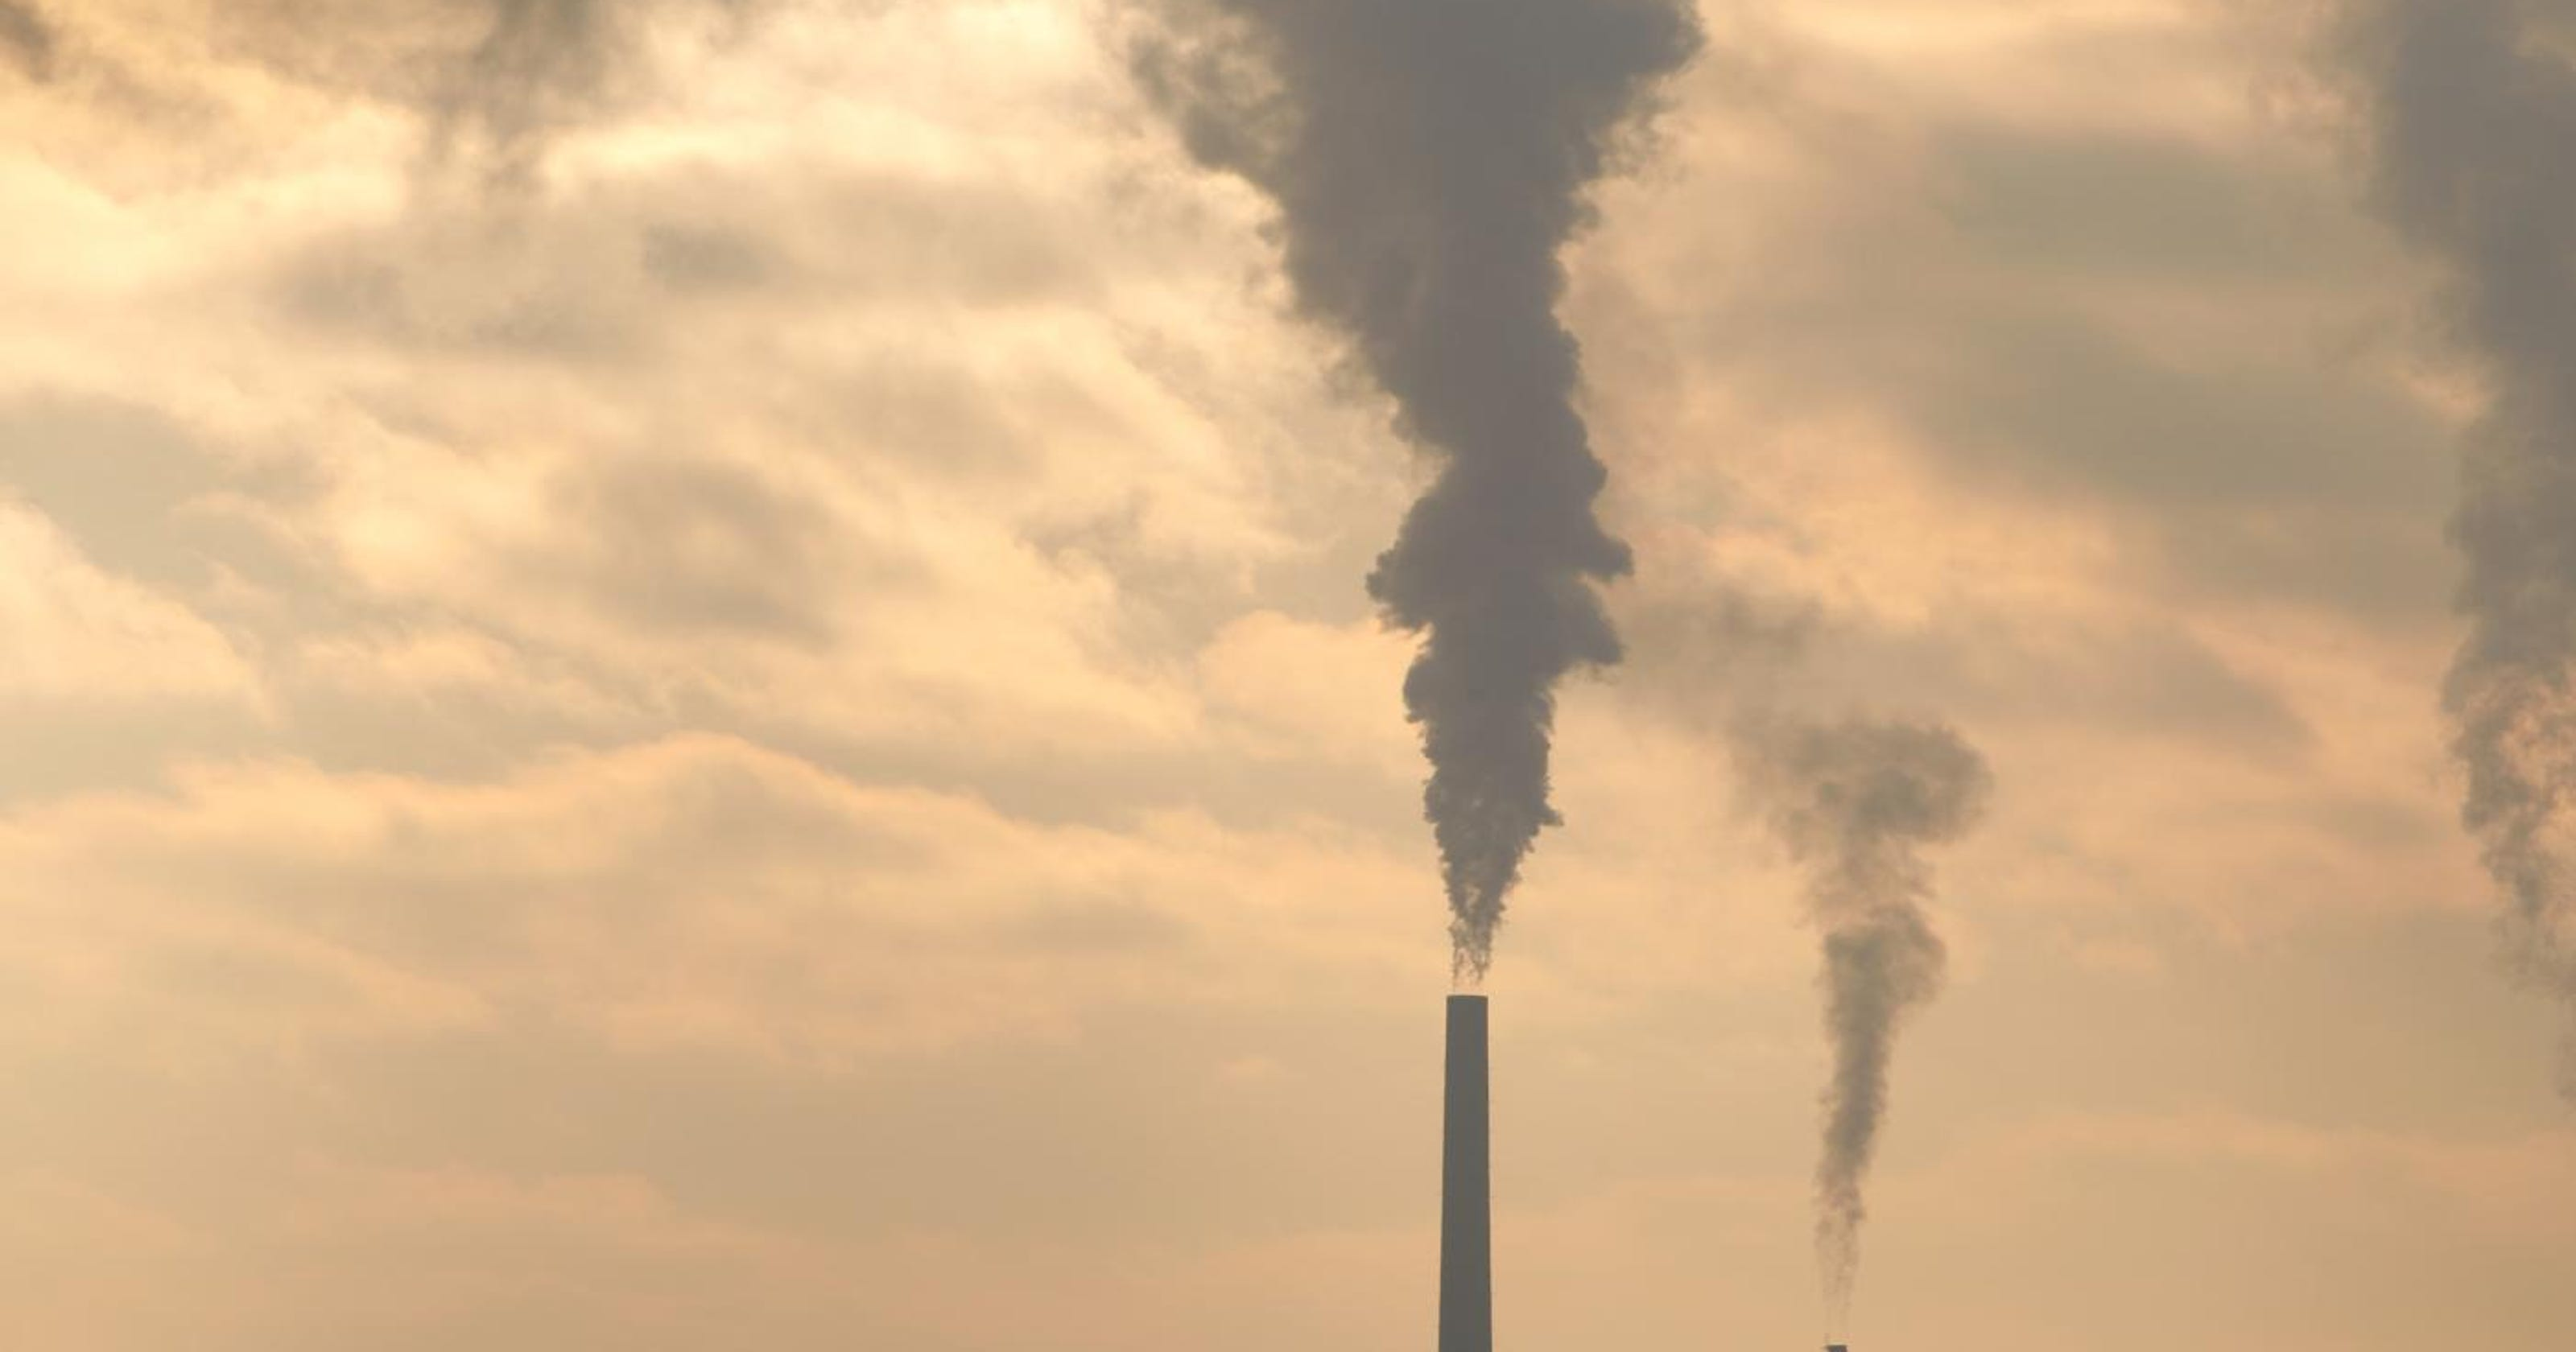 Delaware mulls options against EPA over upwind air pollution